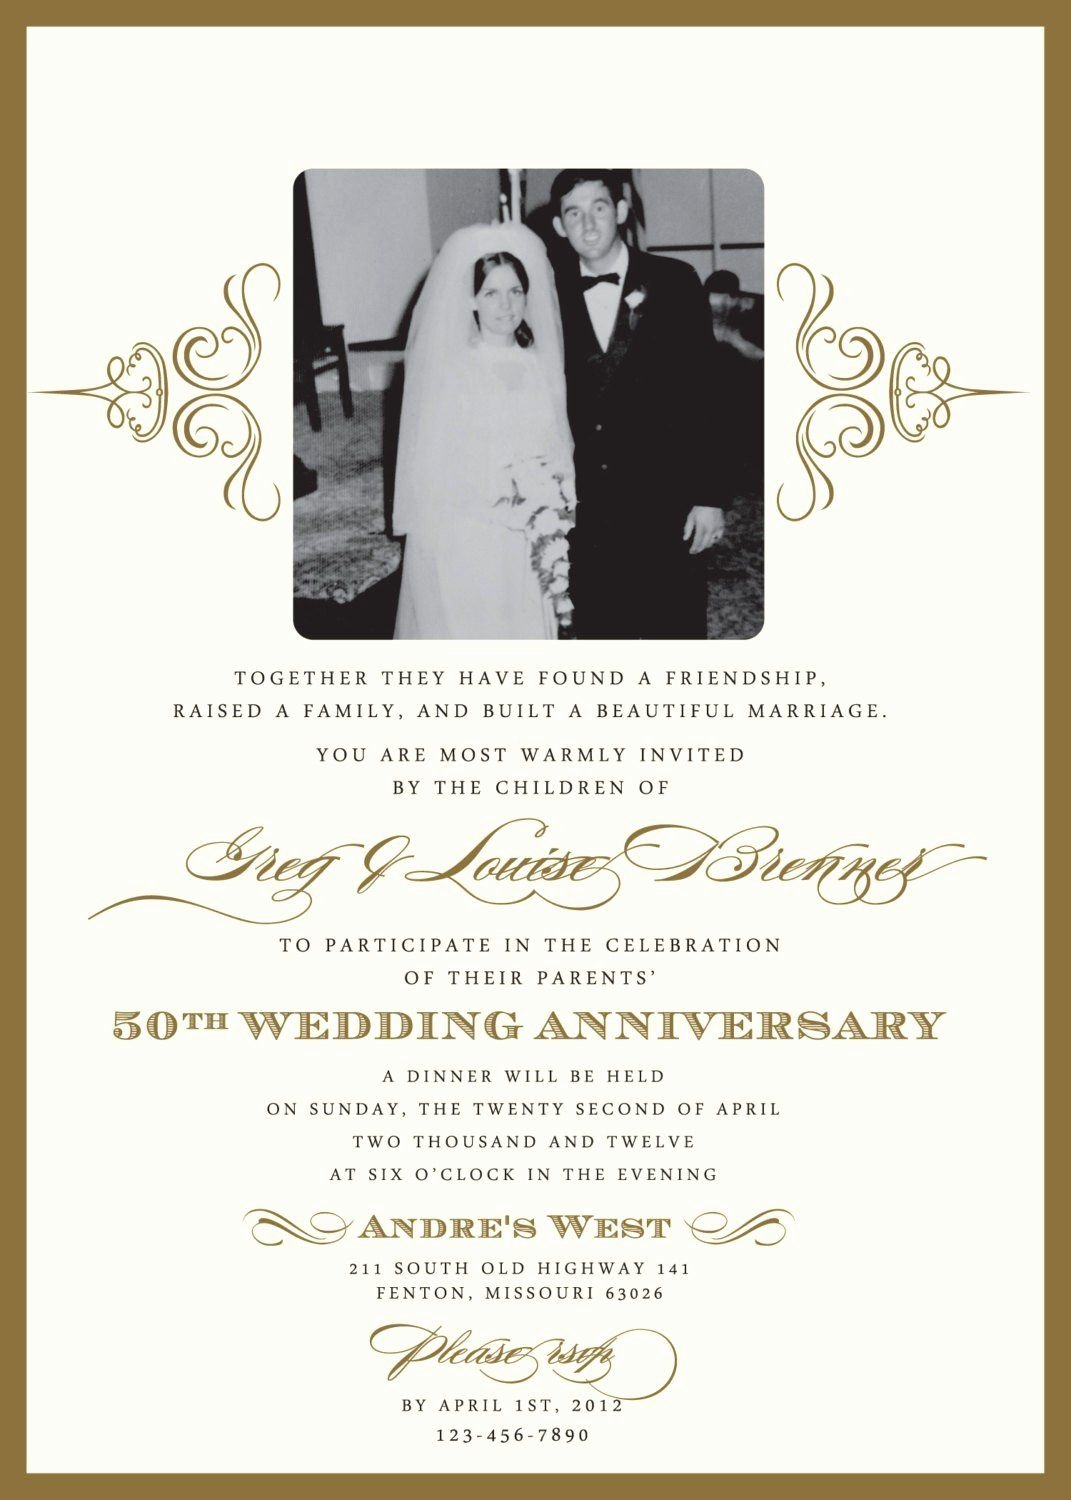 004 Excellent Free 50th Wedding Anniversary Party Invitation Template Image  TemplatesFull